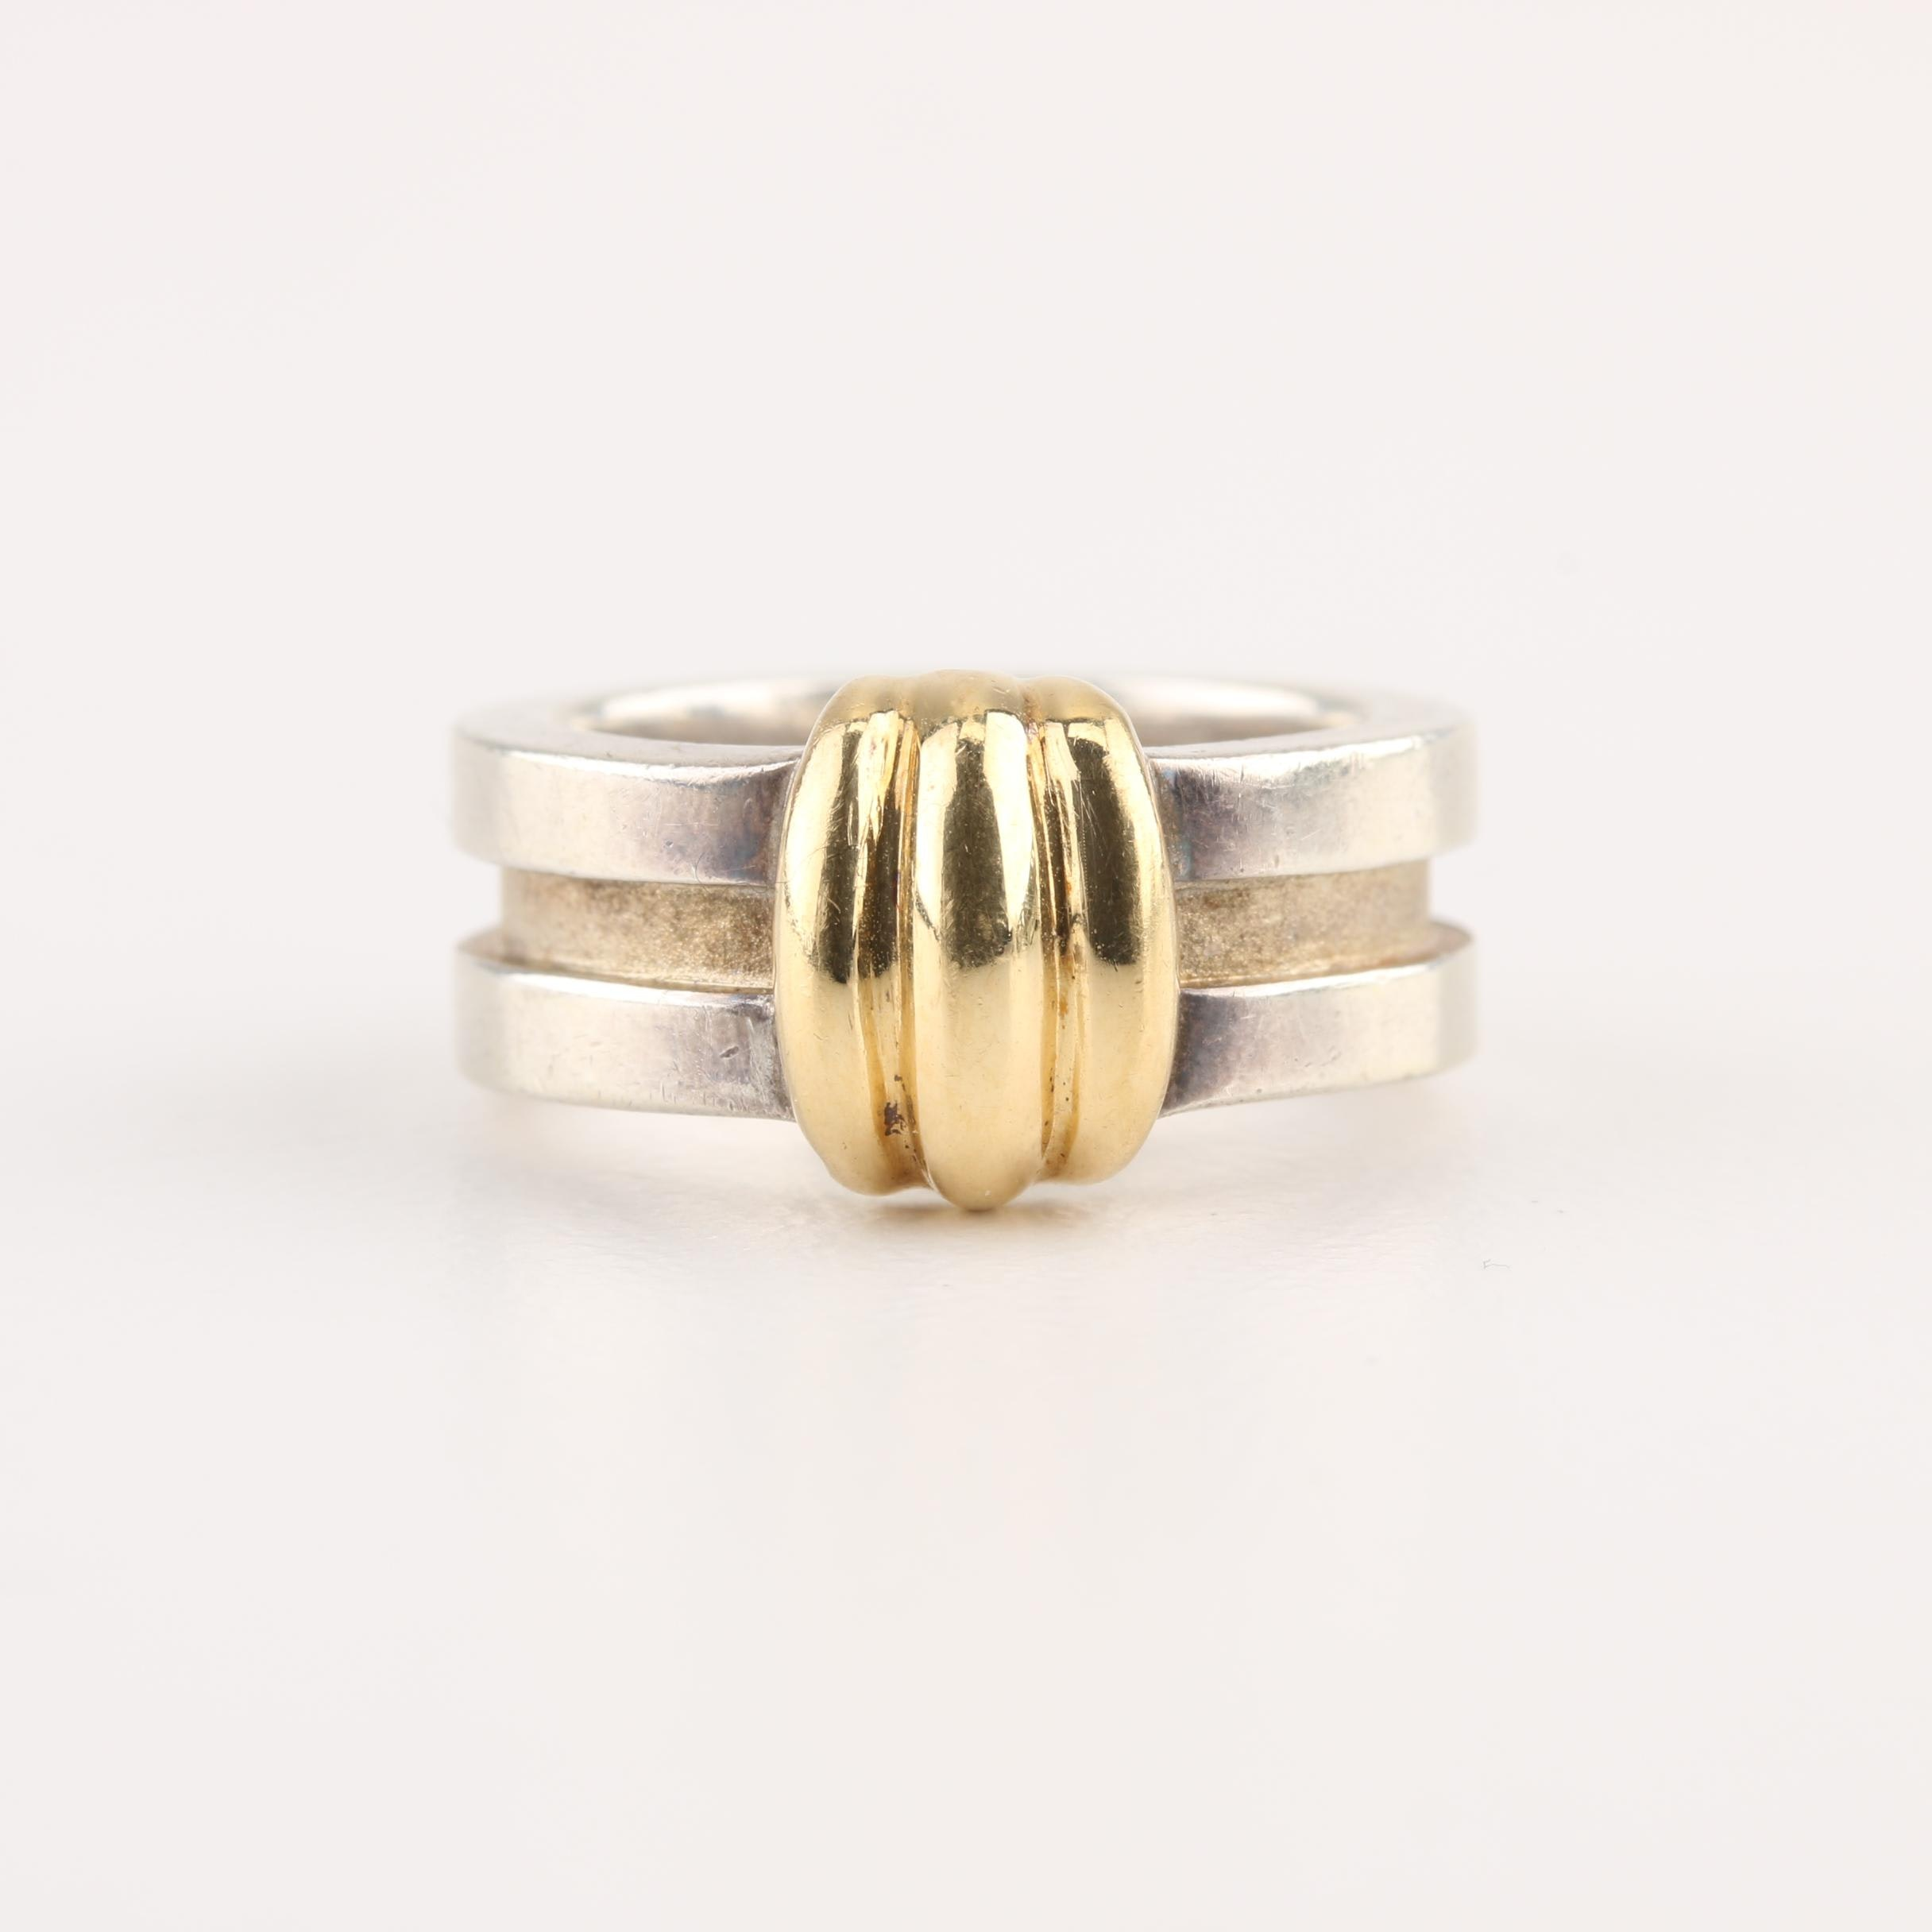 Tiffany & Co. Sterling Silver Atlas Groove Ring With 18K Yellow Gold Accent